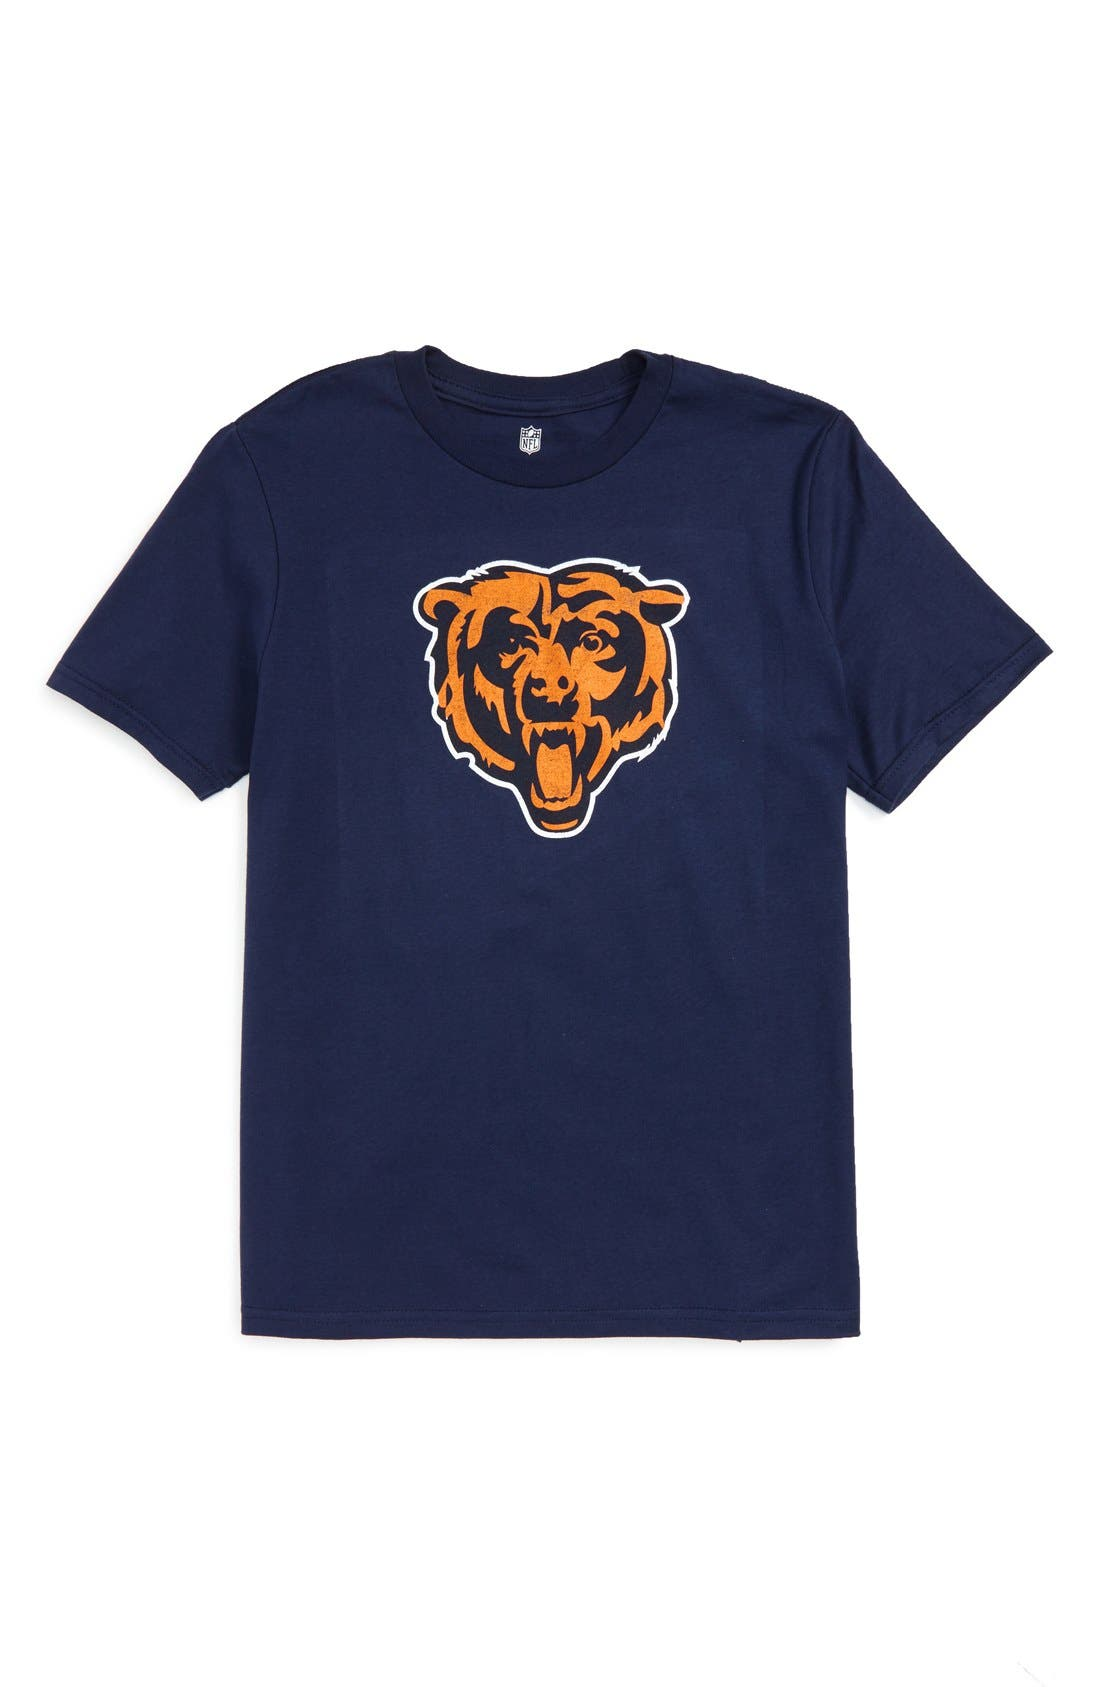 'NFL - Chicago Bears' Distressed Logo Graphic T-Shirt,                             Main thumbnail 1, color,                             410